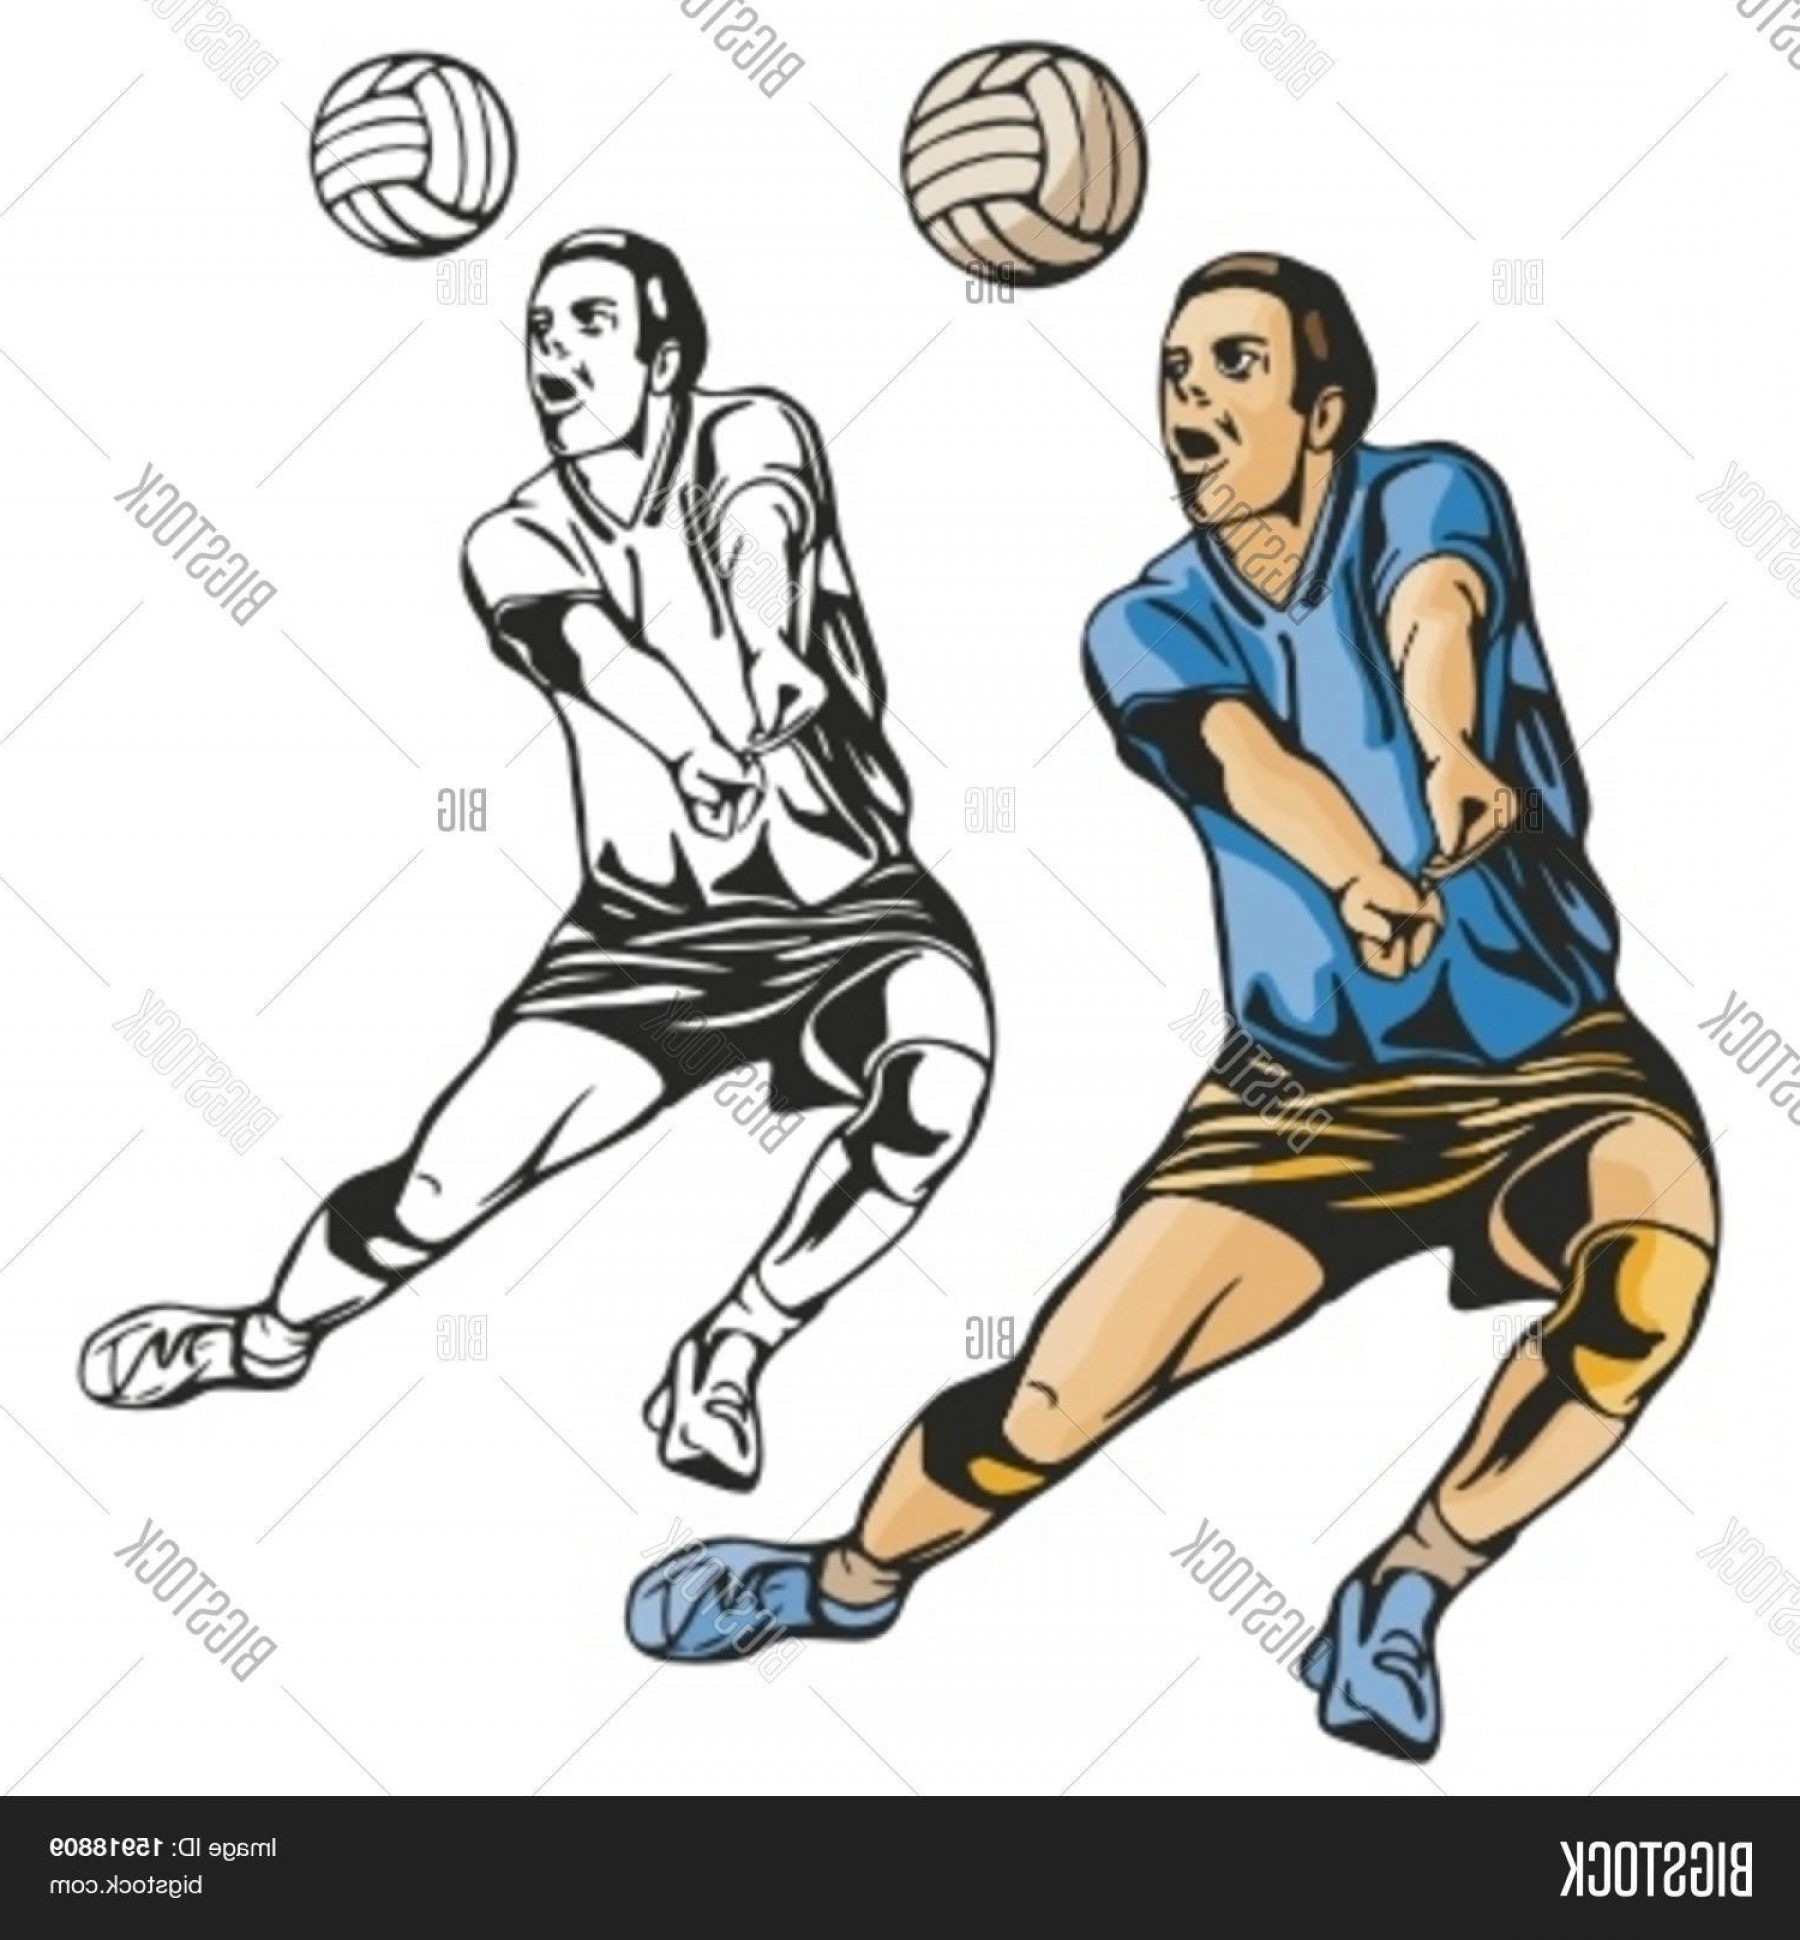 Volleyball Player Vector: Stock Vector Volleyball Player Vector Illustration